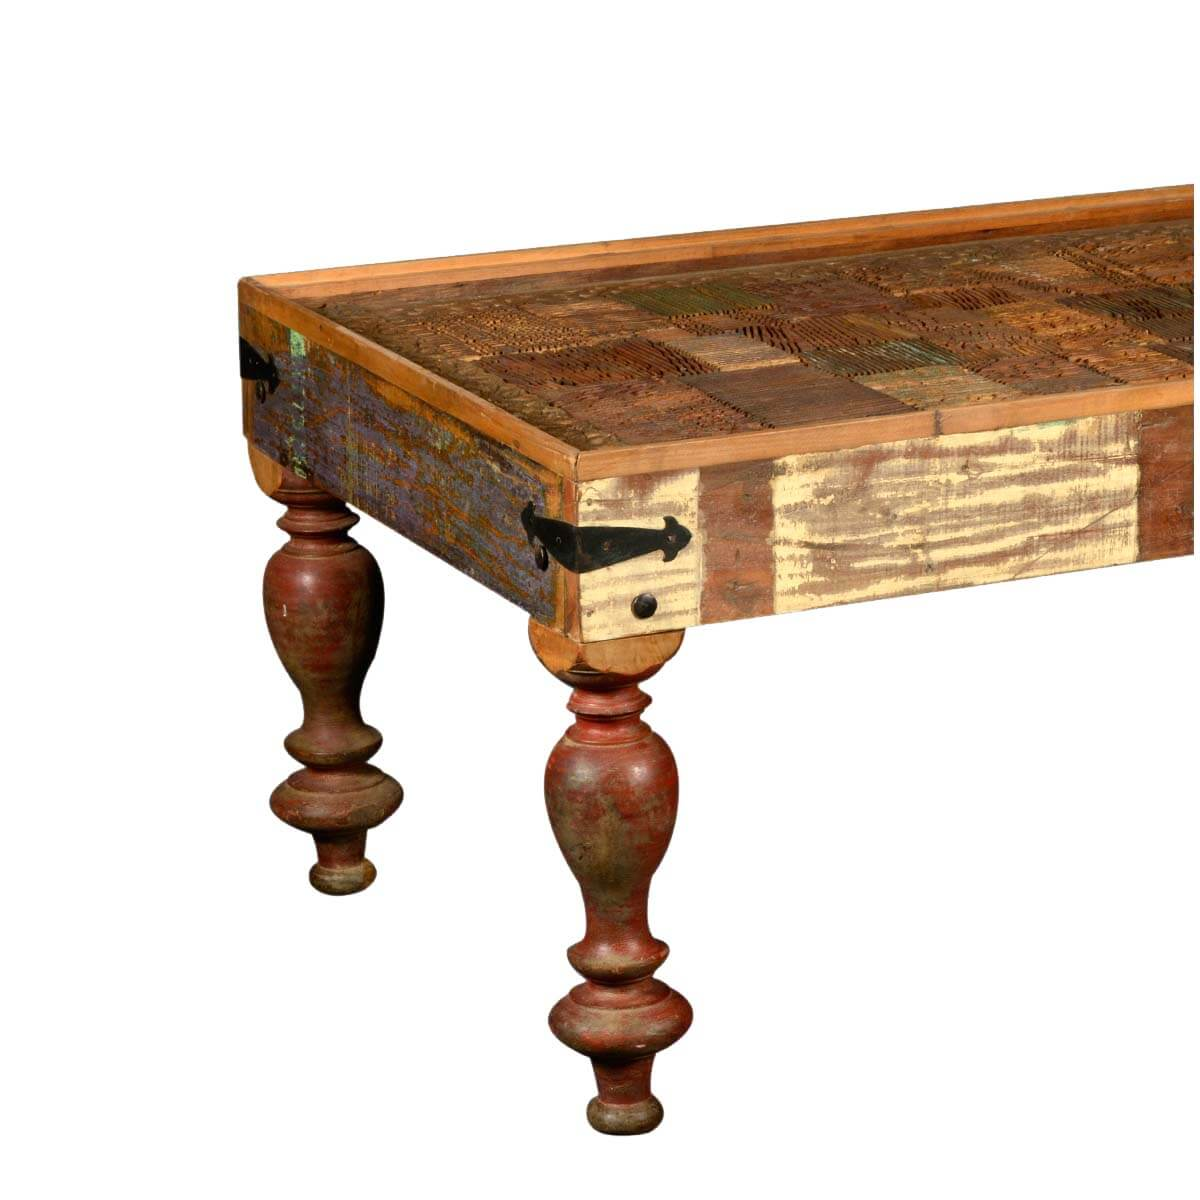 Couchtisch Klassisch Holz Reclaimed Wood Classic Country Style Rectangular Coffee Table